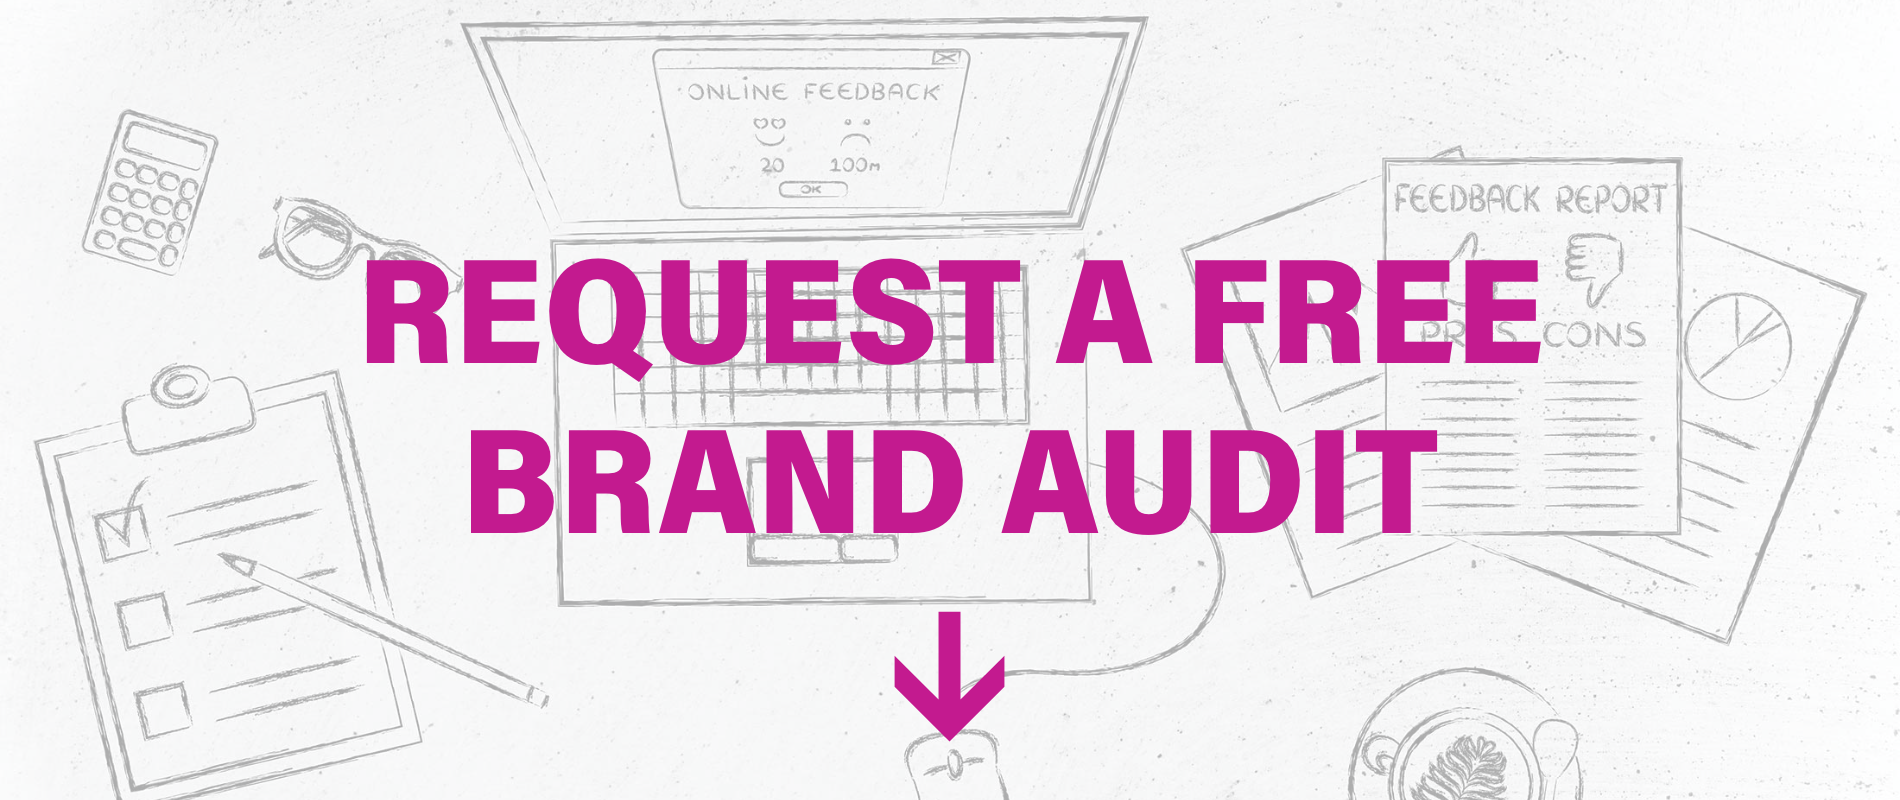 Digital Marketing Agency - Request A Free Brand Audit